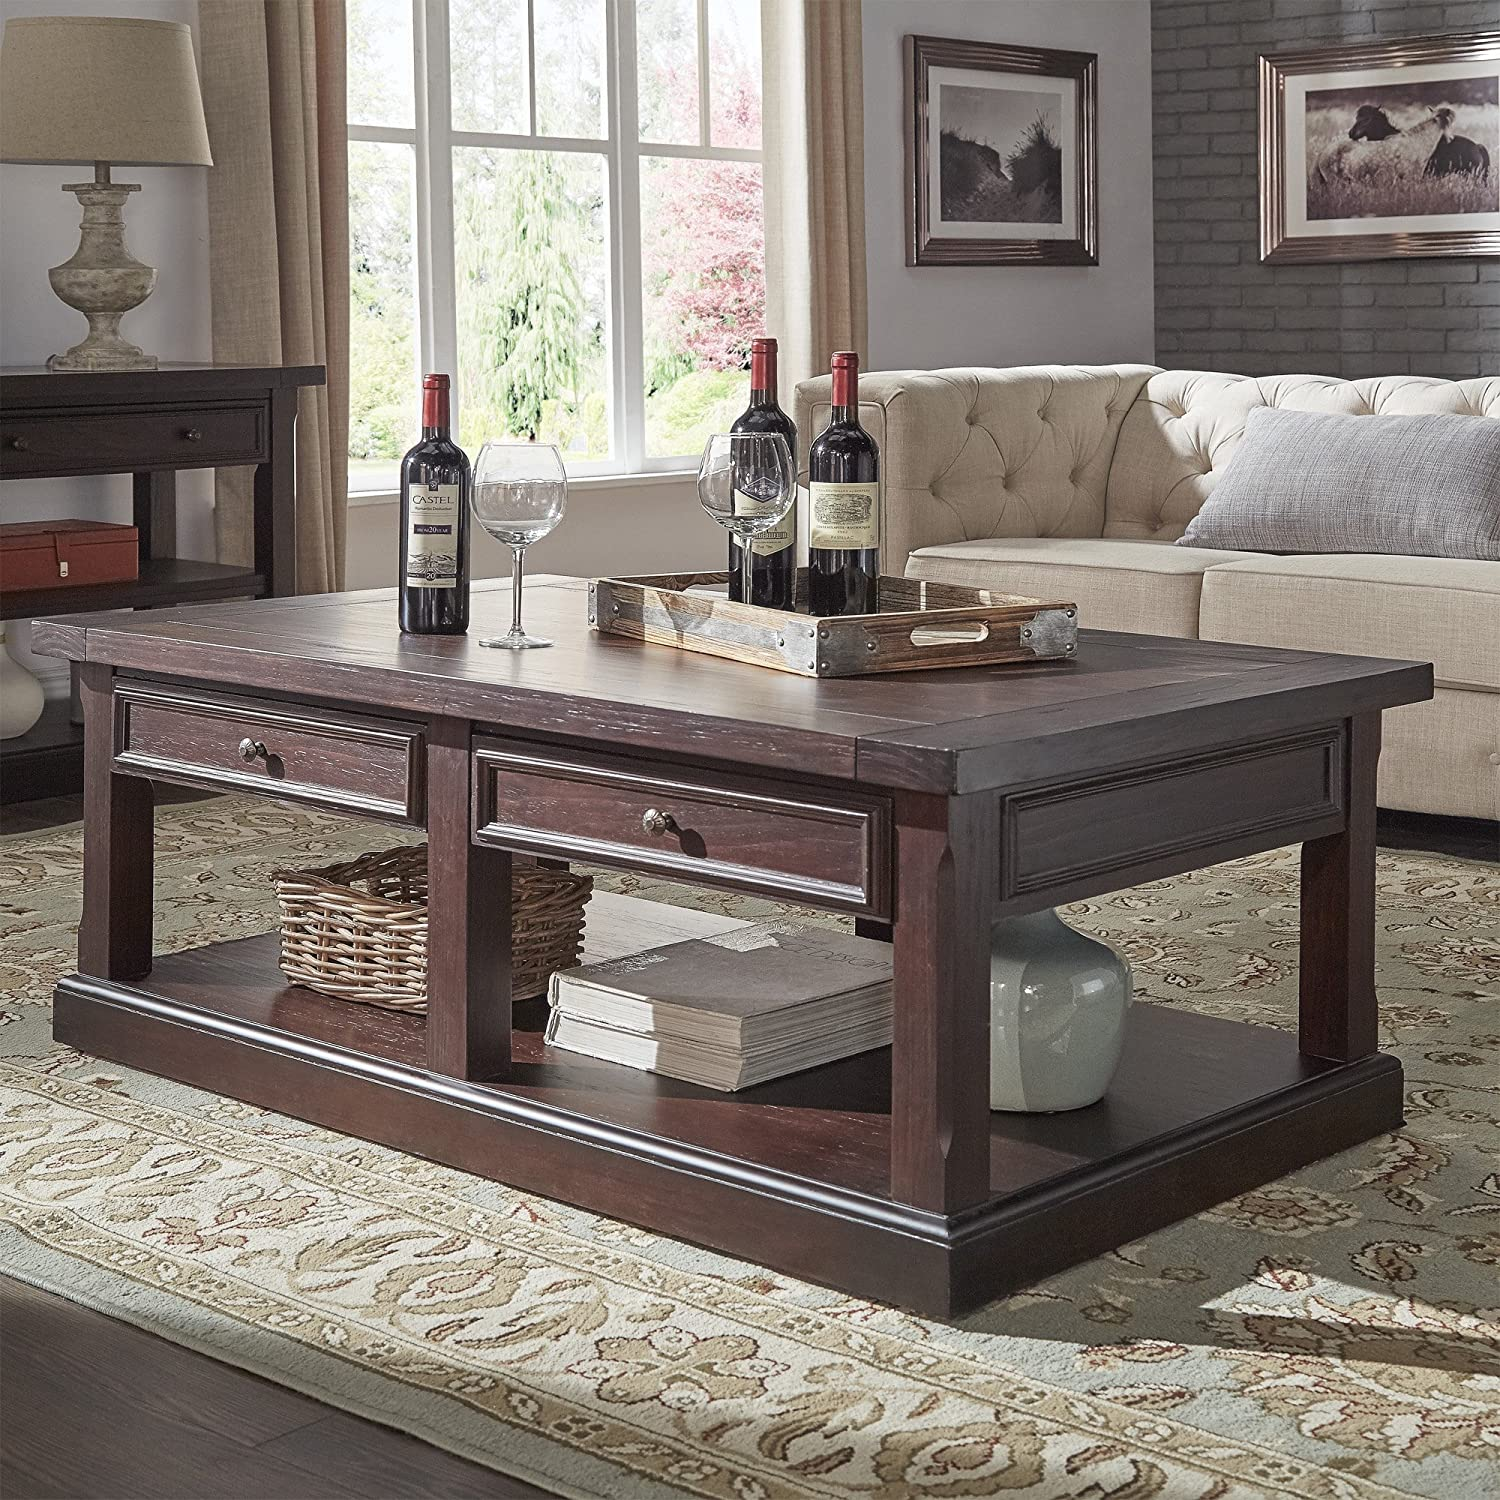 Amazon com rectangle living room coffee sofa end accent table sets wood and veneer construction drawers and open storage expert guide kitchen